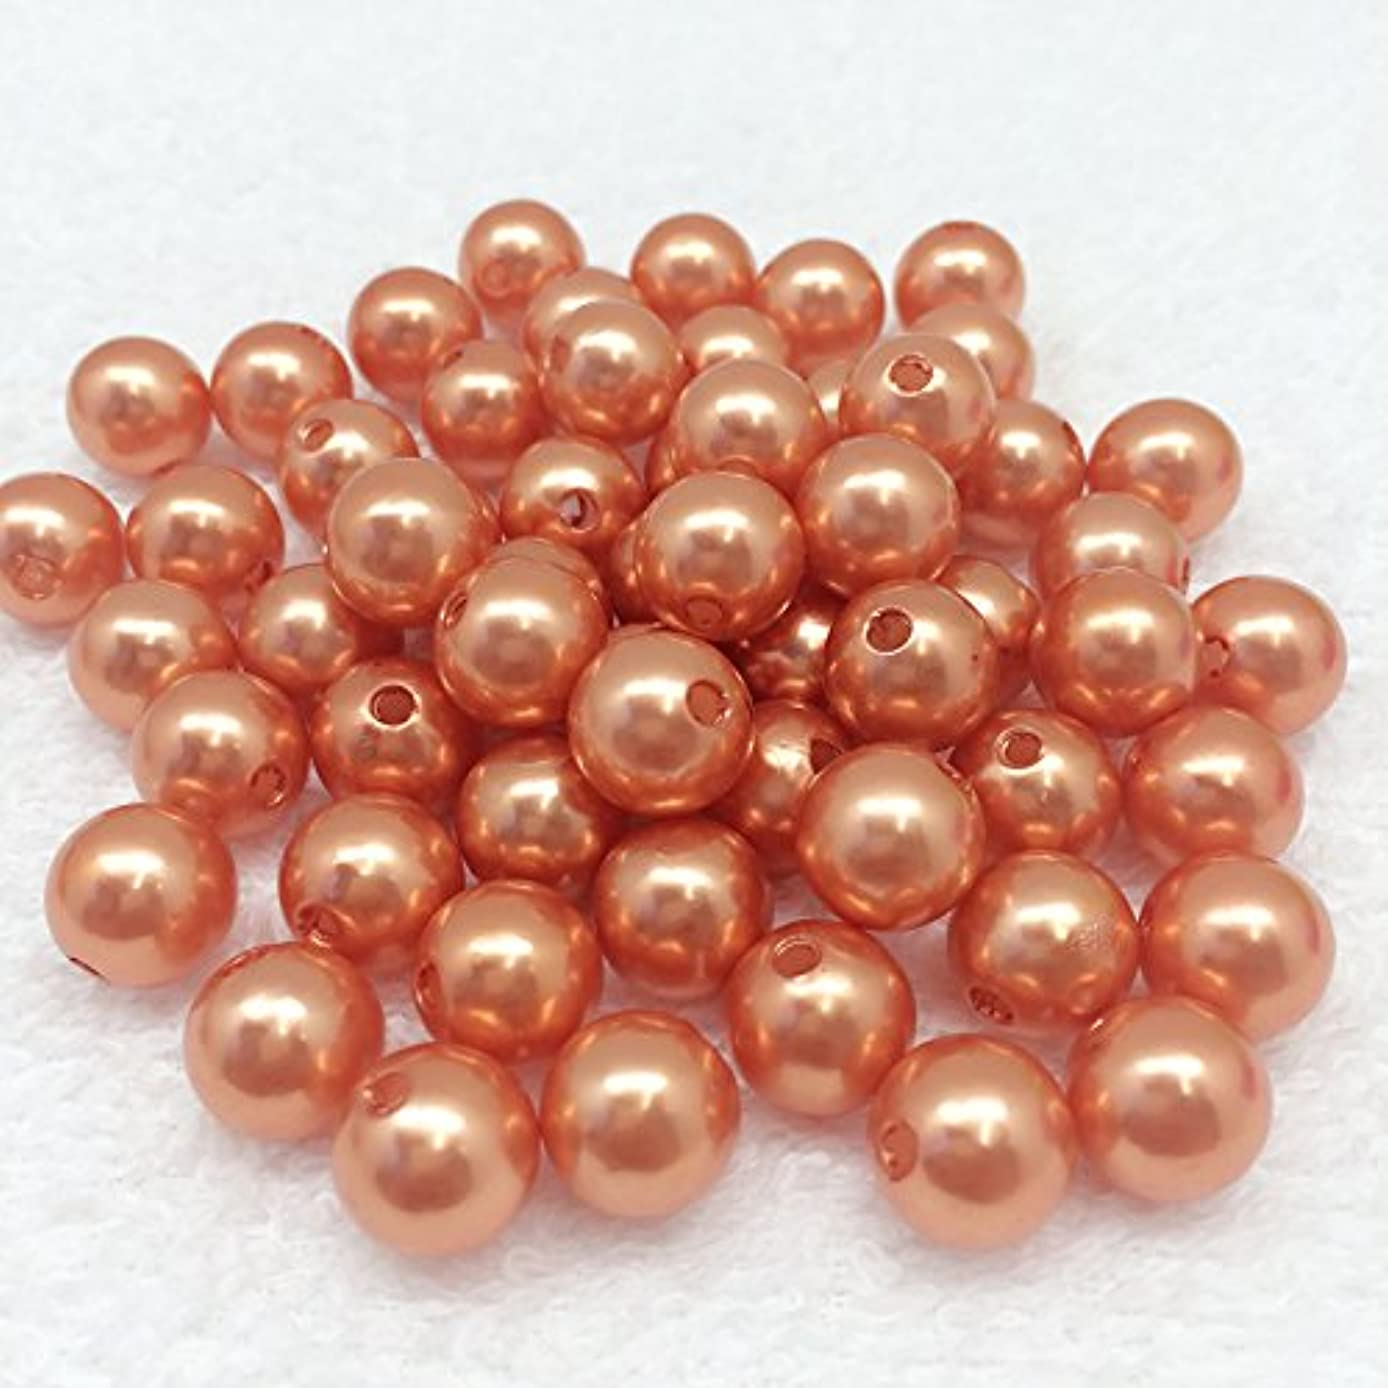 PEPPERLONELY 50 Grams (Apprx 58 PC) Acrylic Faux Pearl Beads 12mm(1/2 Inch), Dark Orange